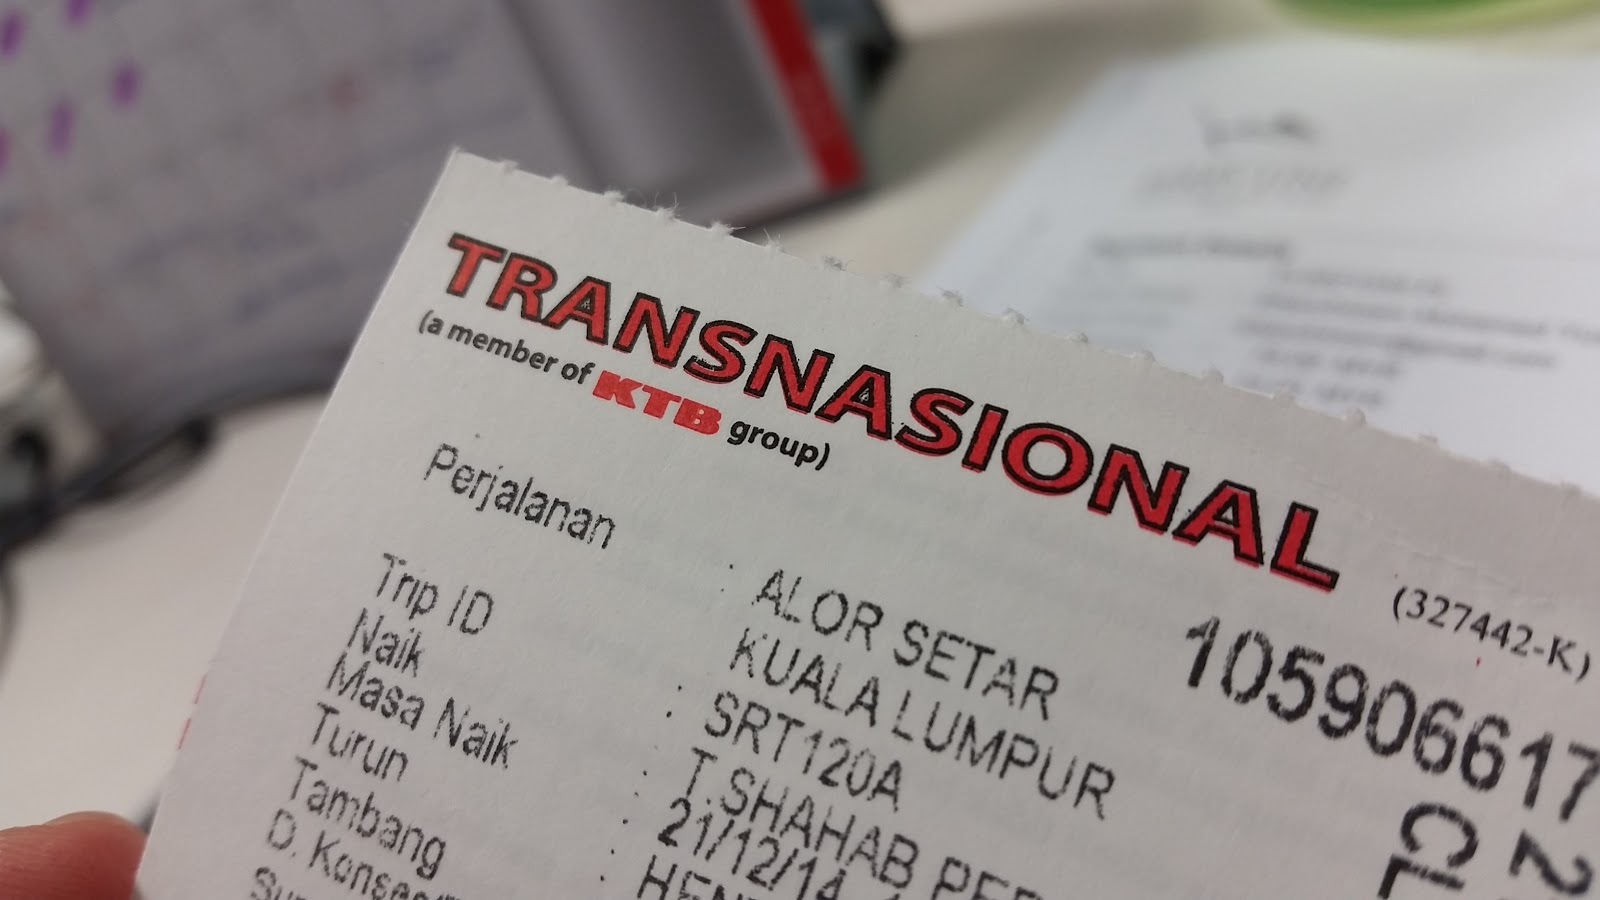 Bas Transnasional AS - KL